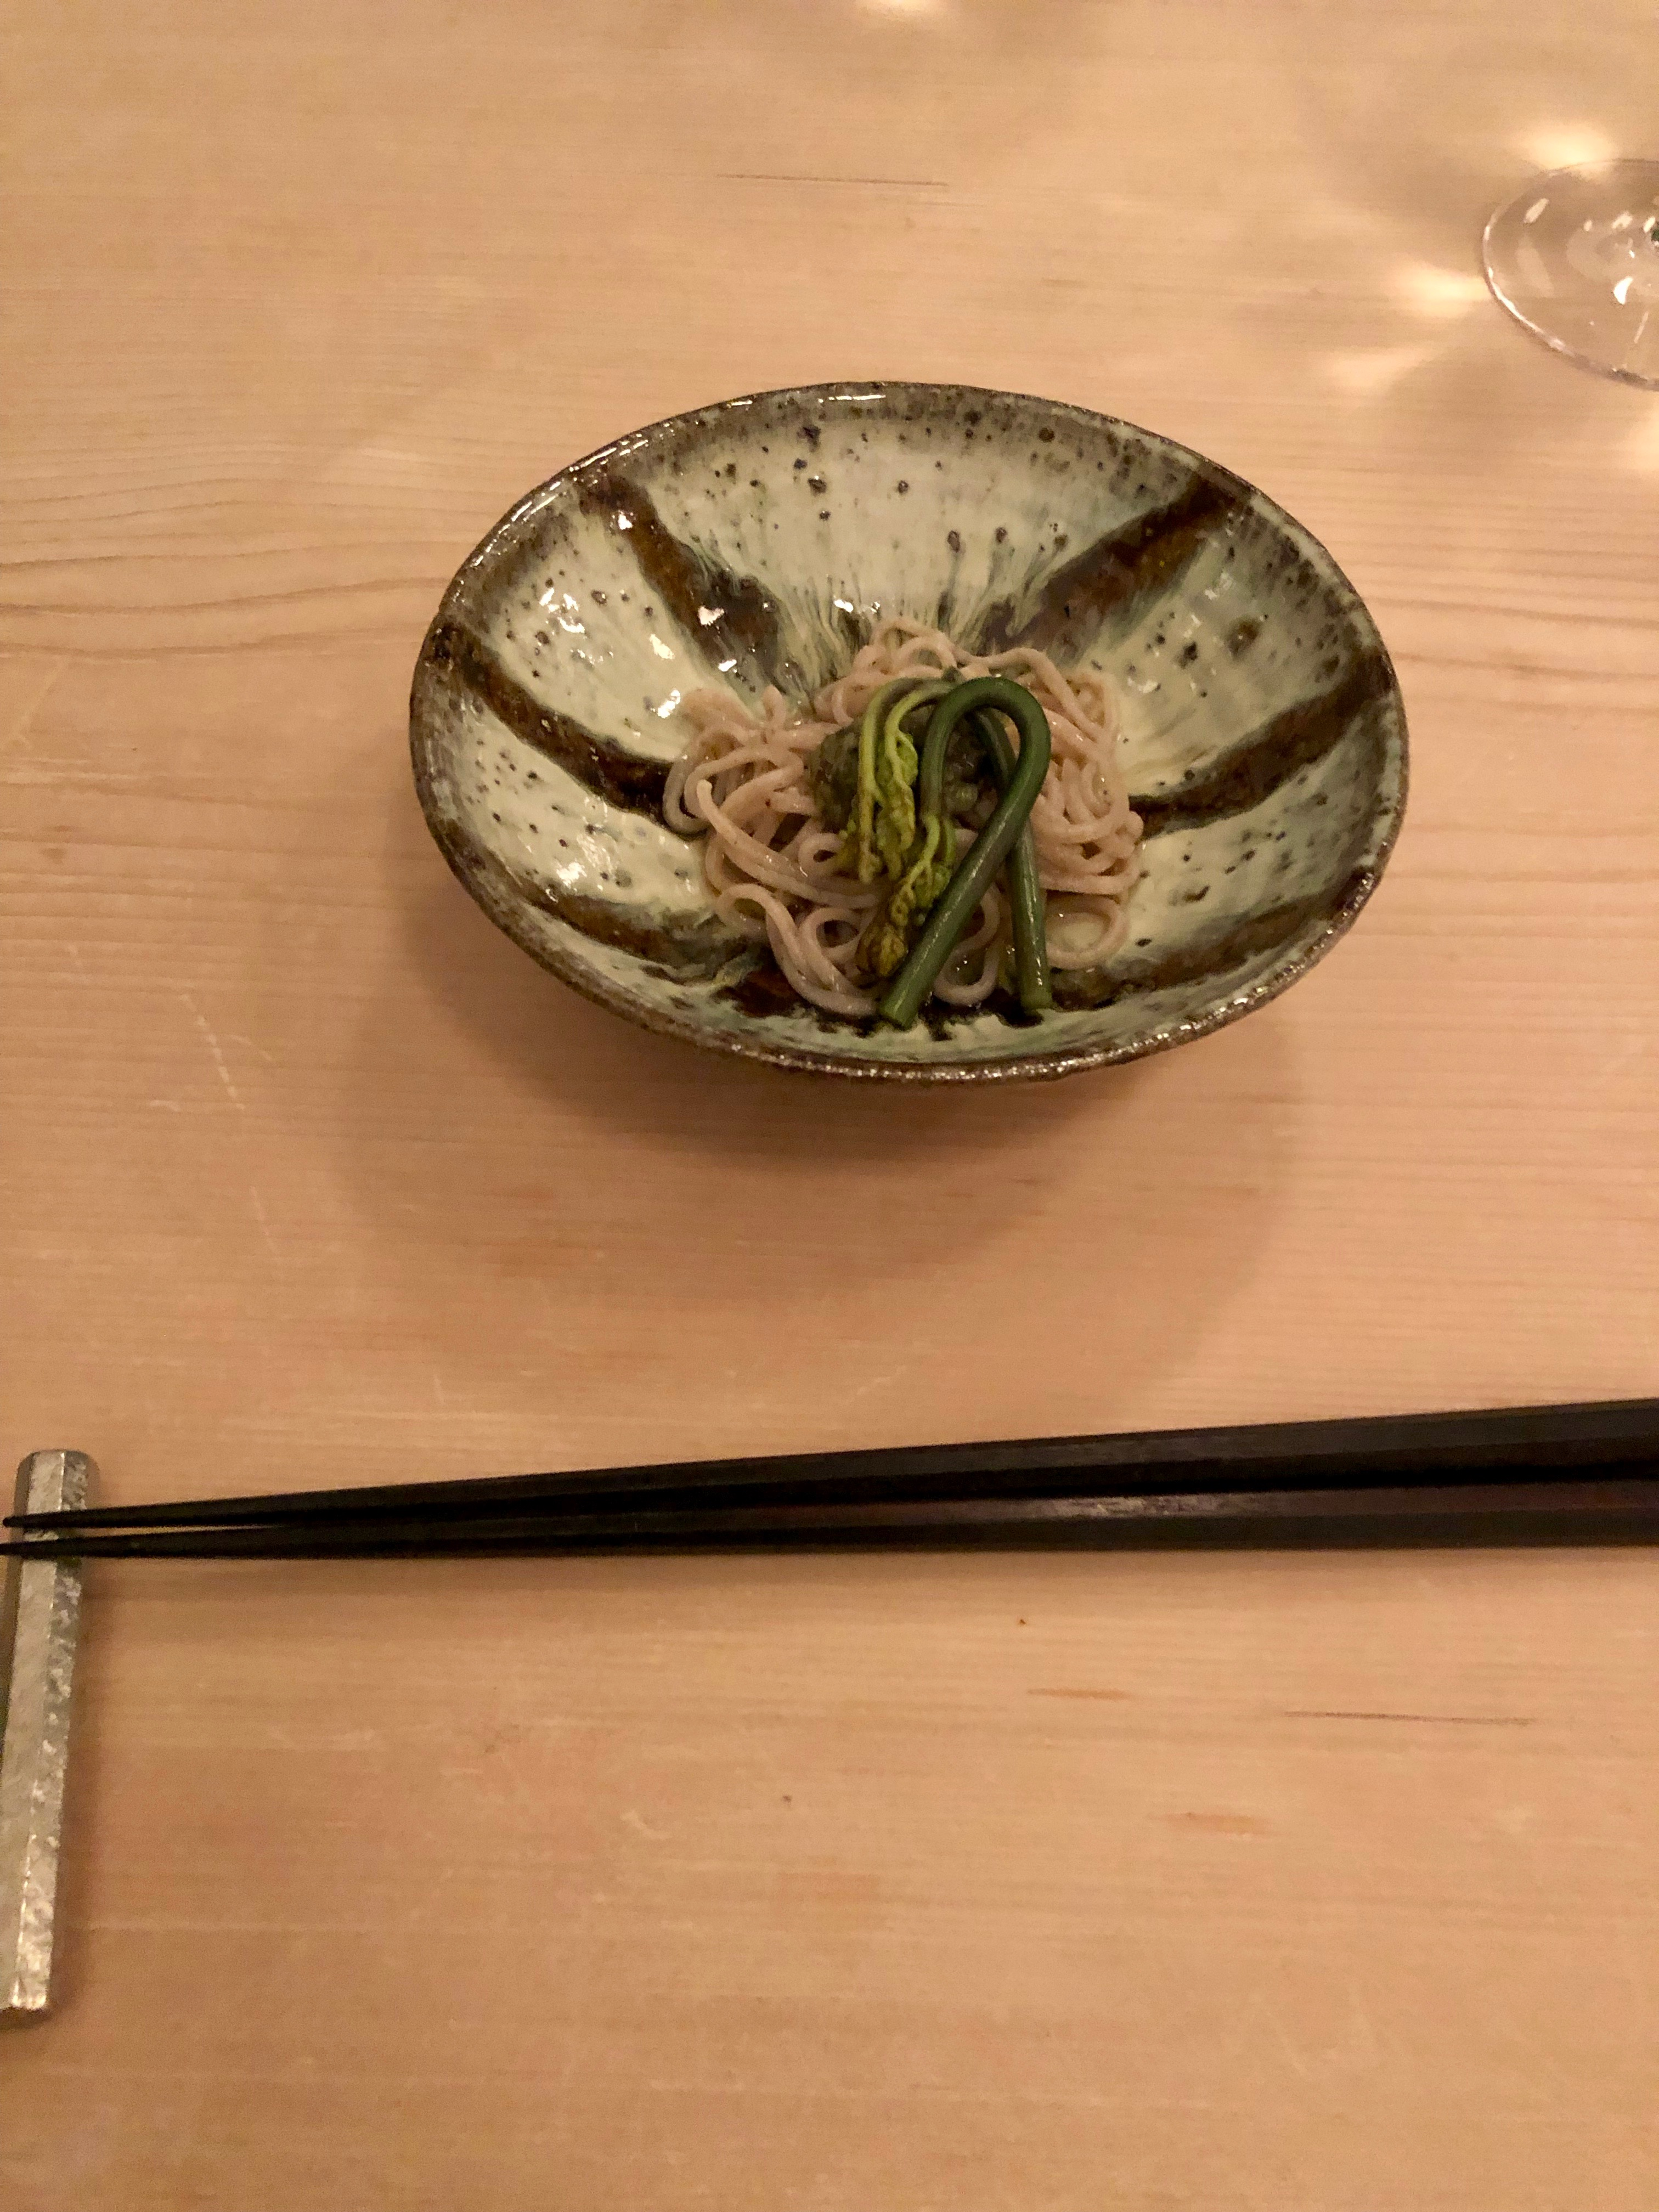 Yakumo Saryo soba noodles with bracken sprout